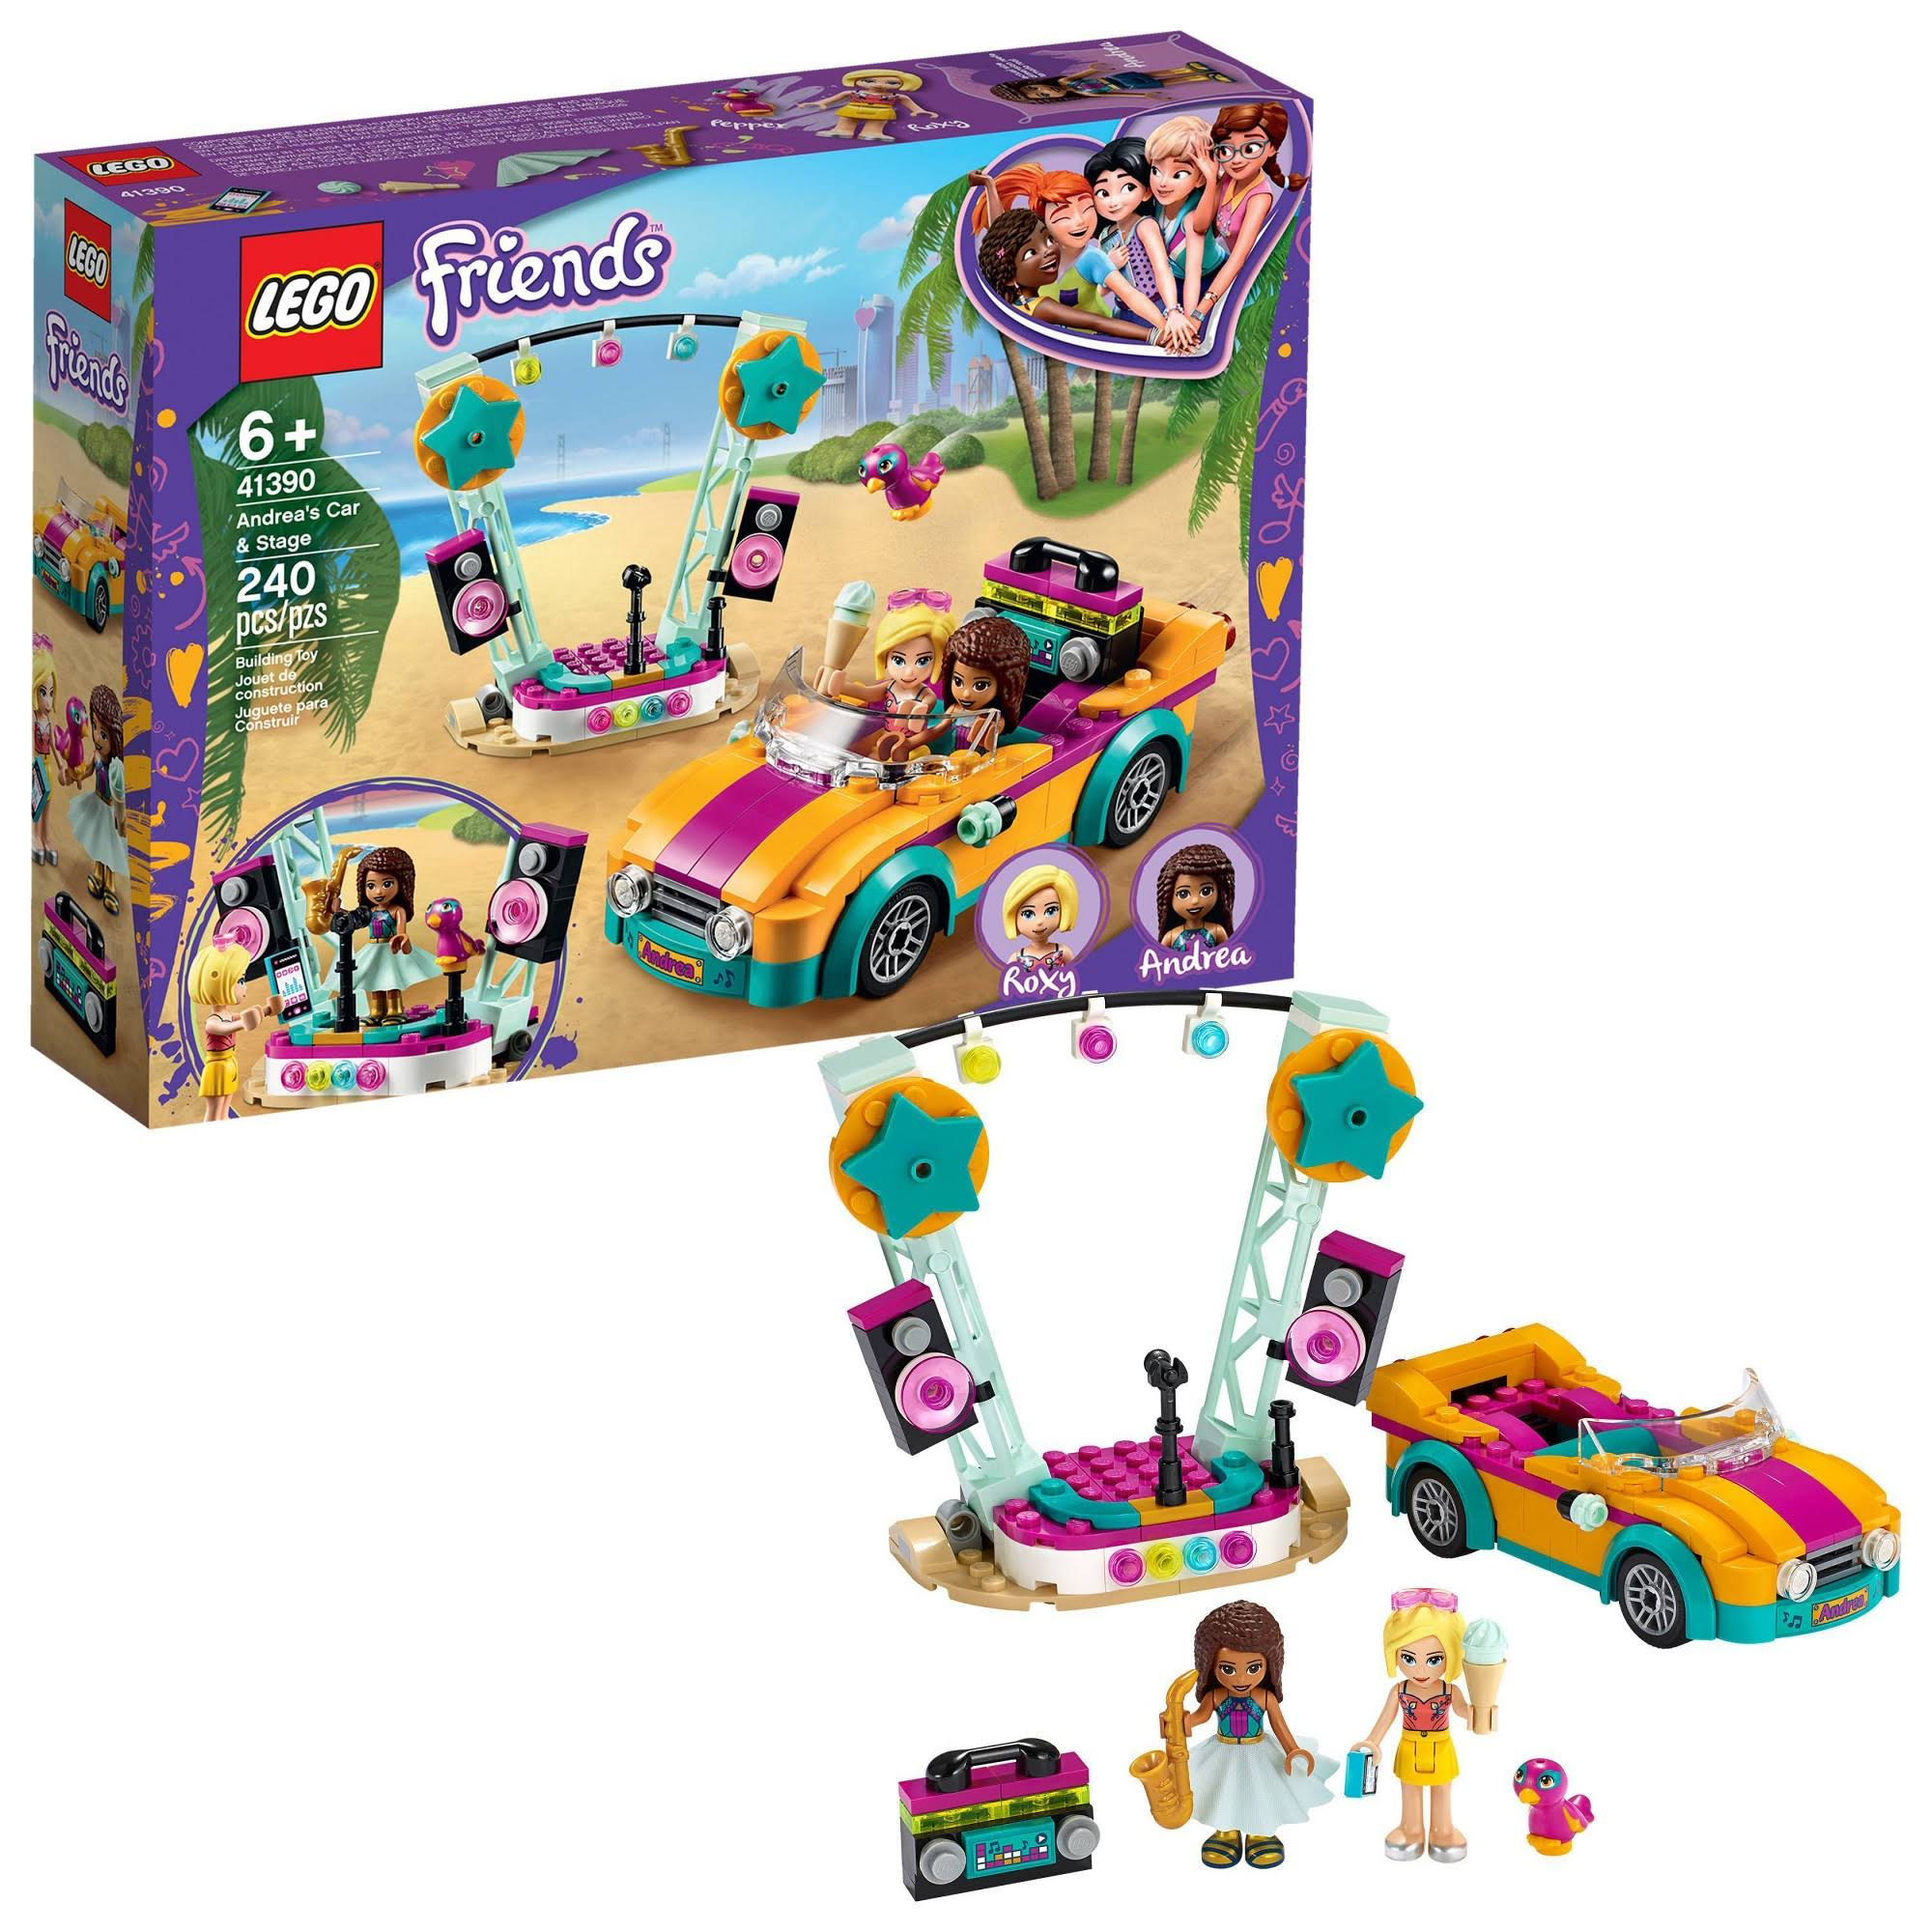 Lego Friends - Andrea's Car & Stage 41390